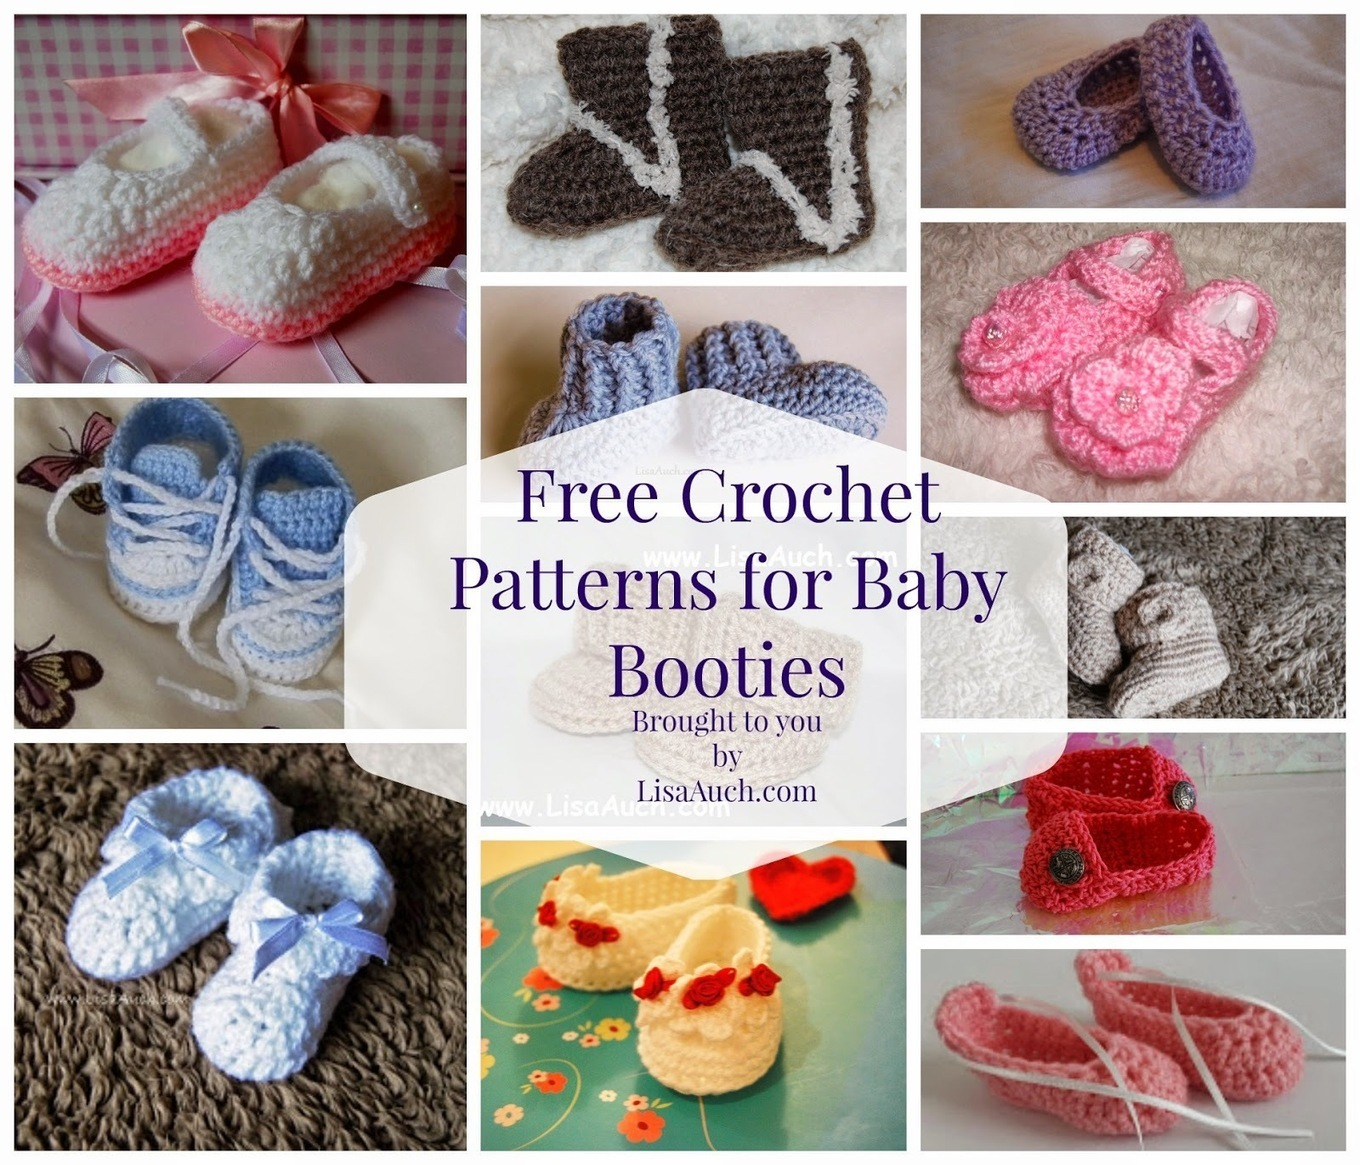 Free Crochet Patterns And Designs By Lisaauch : Free Crochet Patterns and Designs by LisaAuch: